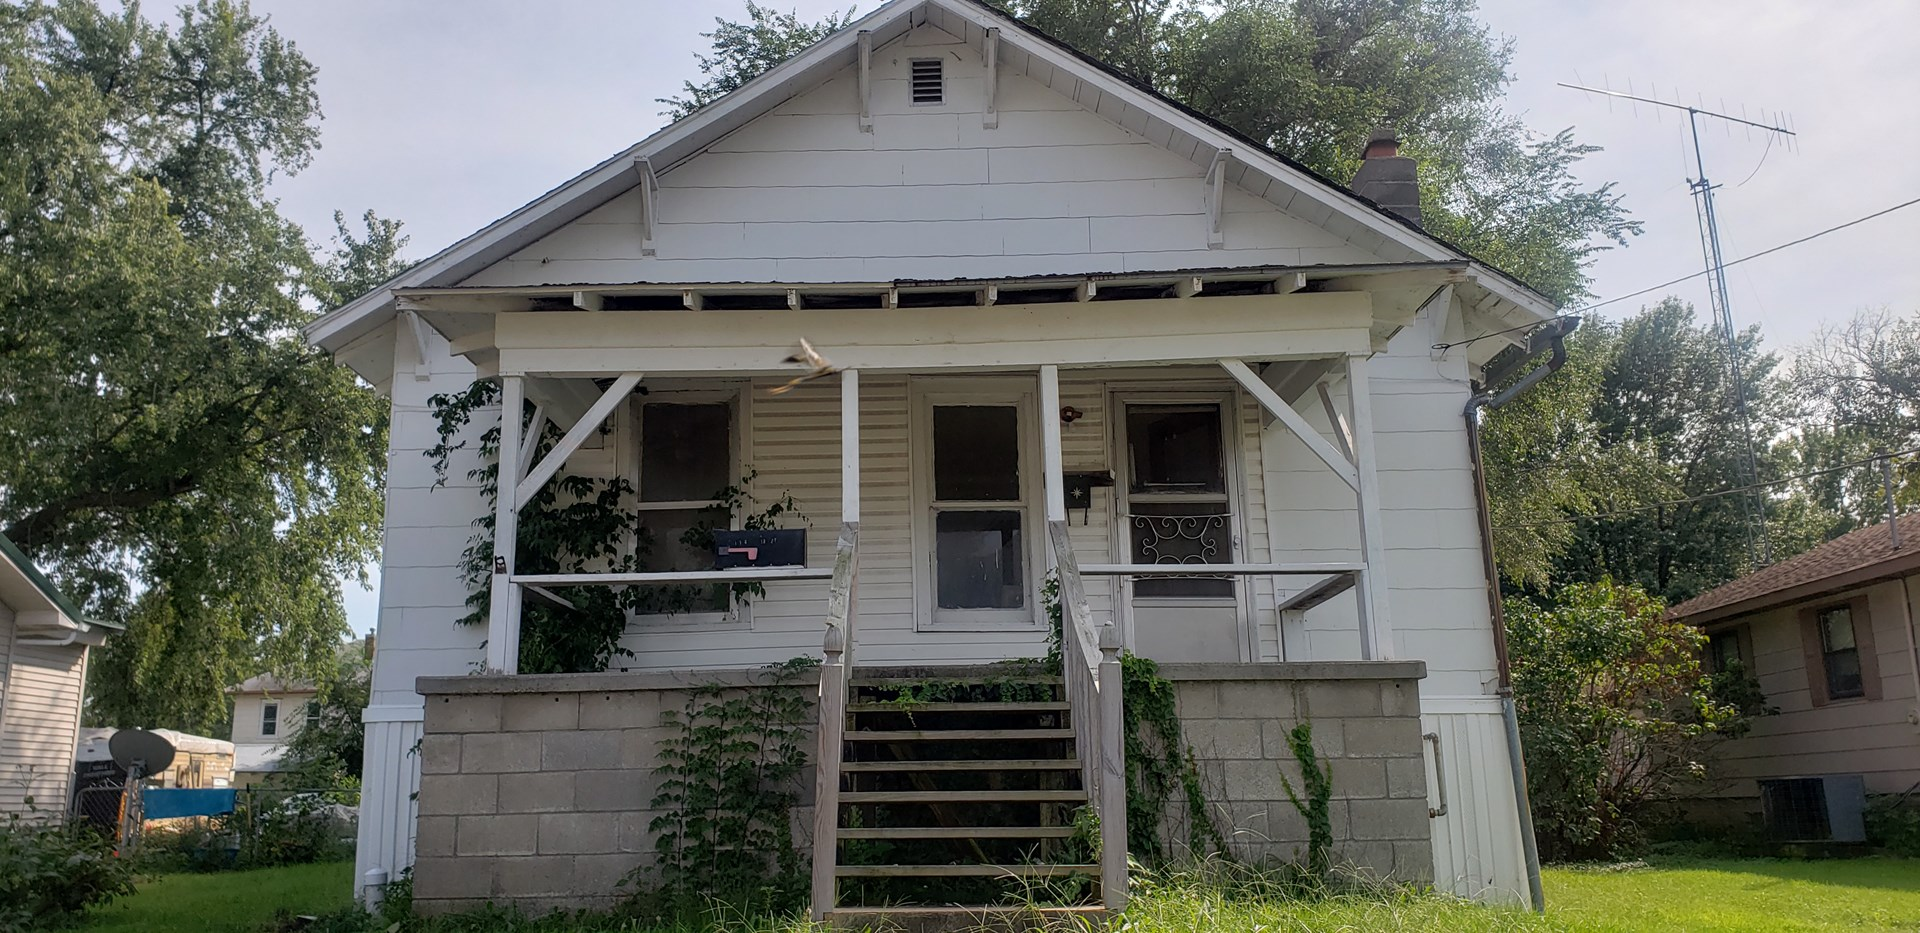 Rental or Flip Home for Sale Chillicothe